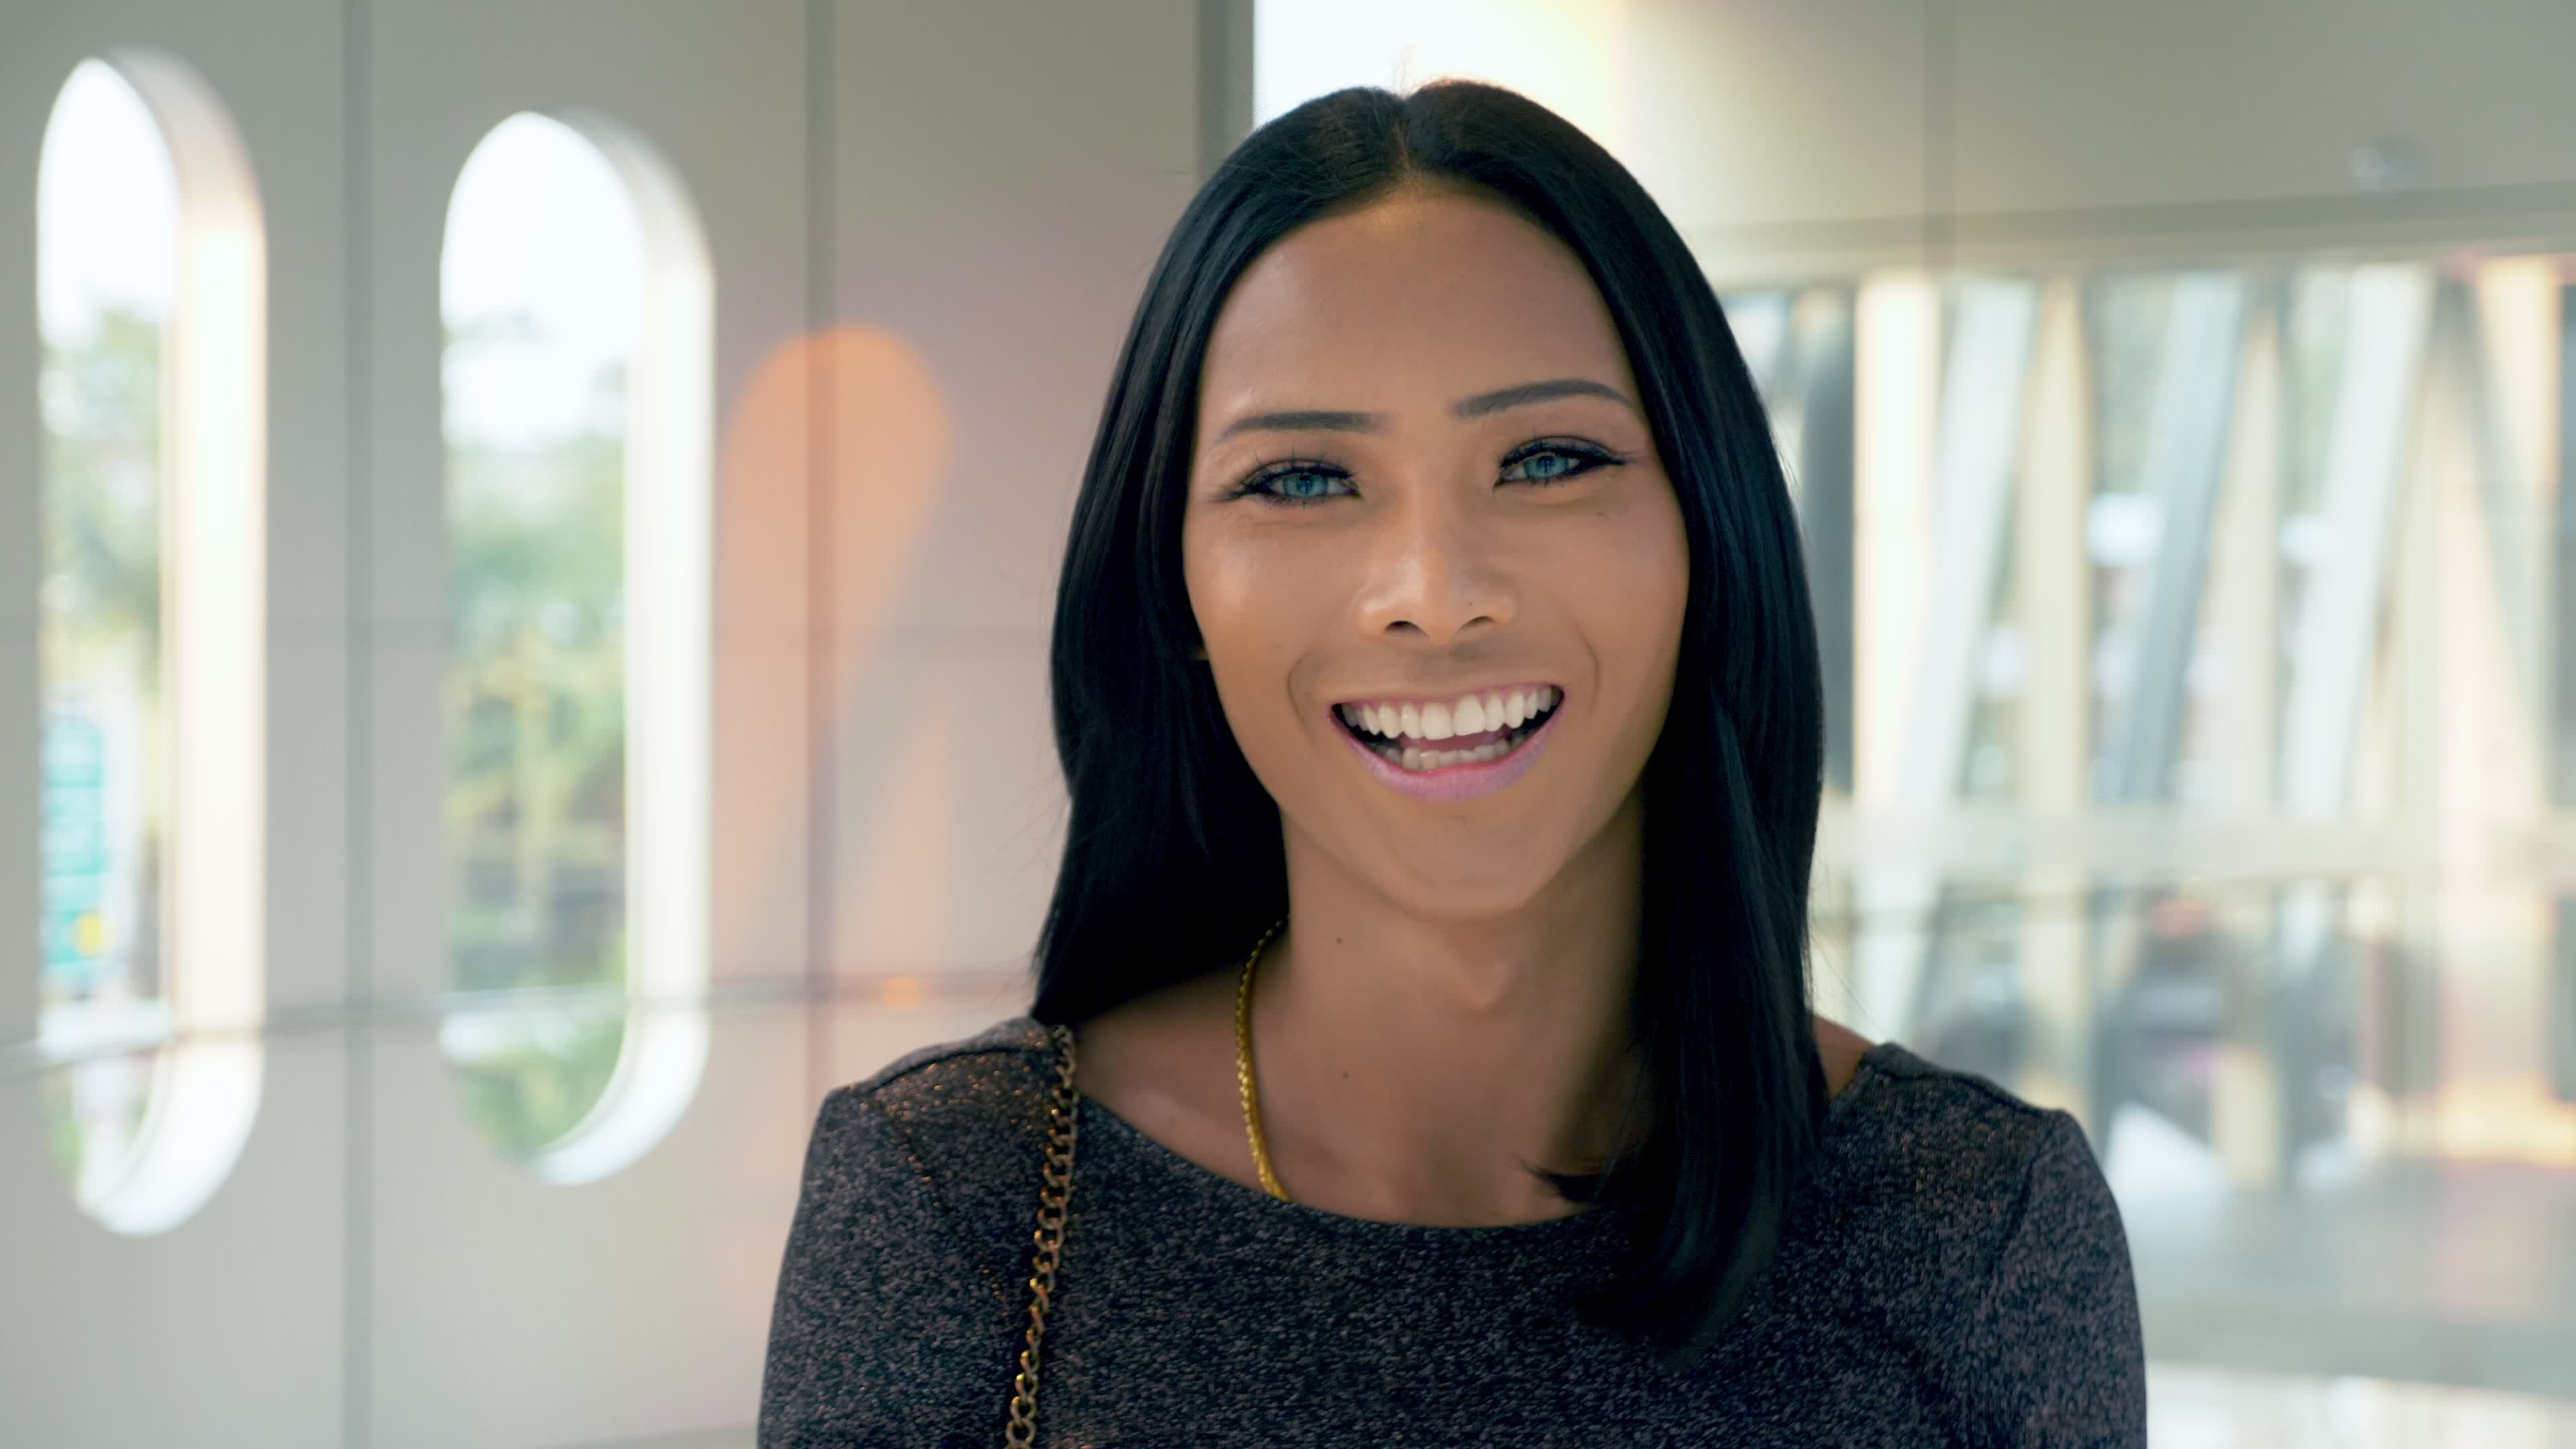 Woman looking at camera smiling for special cosmetic procedures